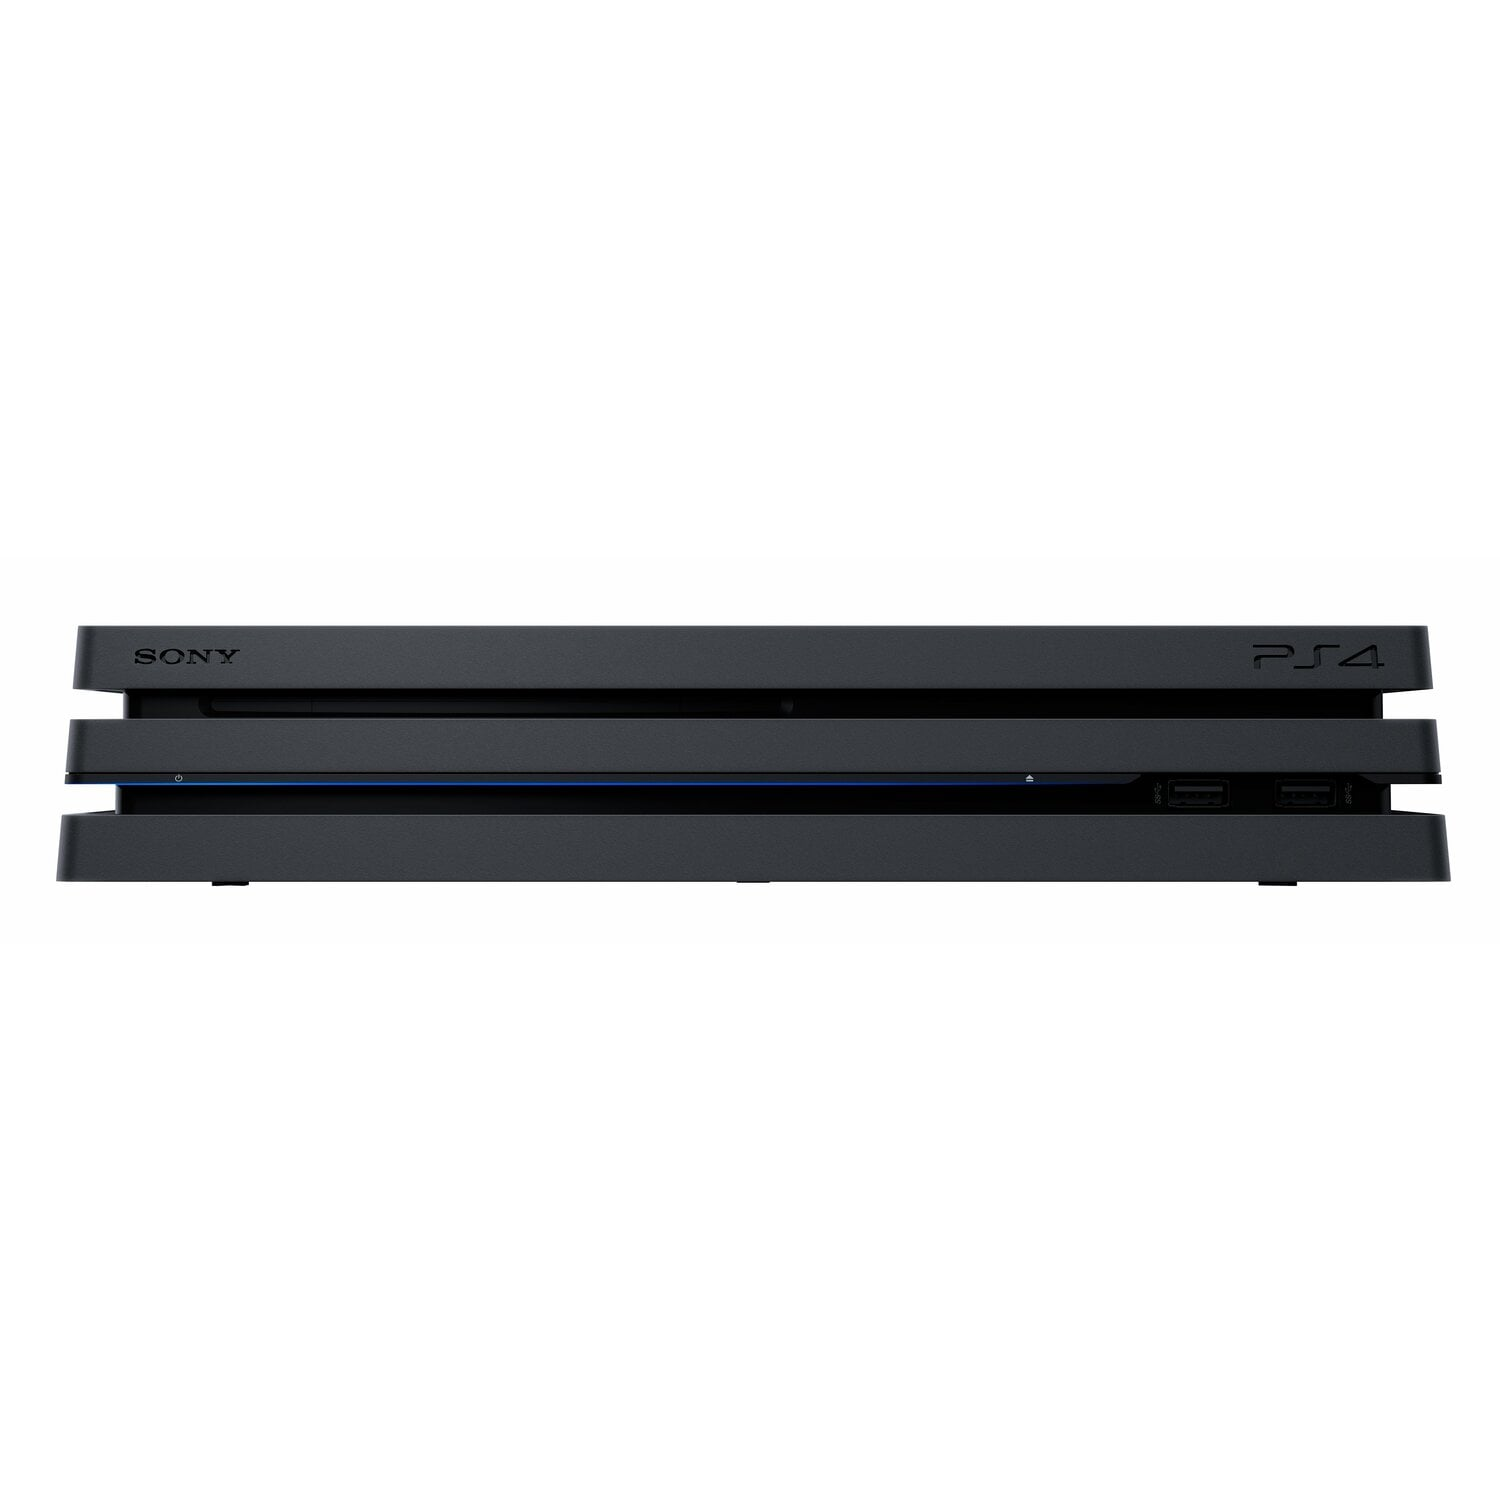 Konsola PlayStation 4 Pro 1TB G Chassis Czarna + Playstation Plus 14 dni